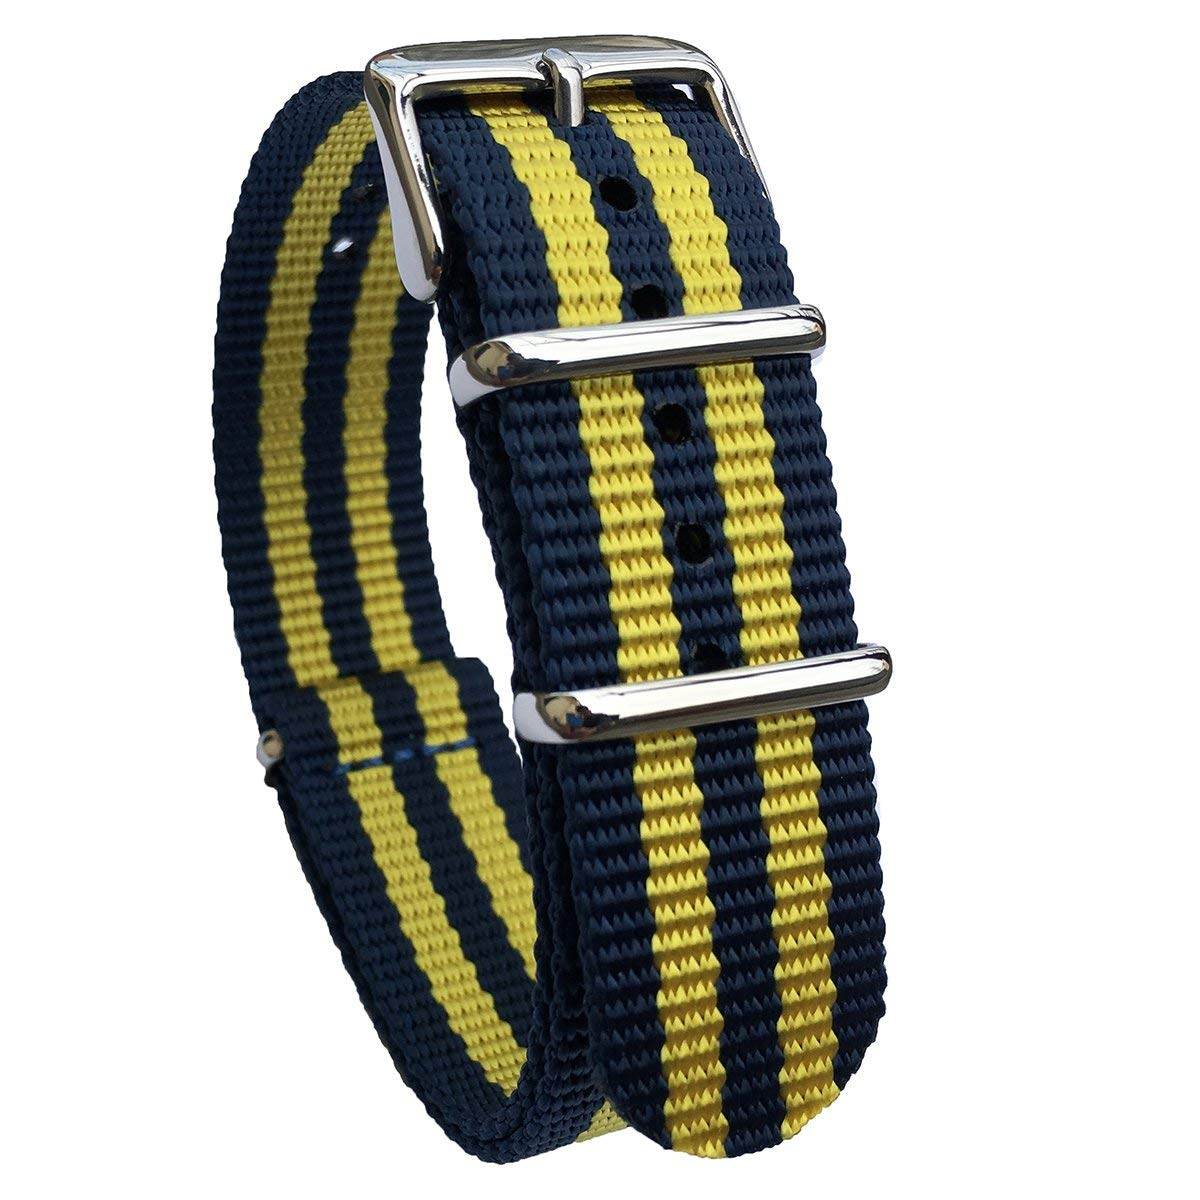 3bbcd014c82 Get Quotations · Leesting Nylon NATO ZULU 18mm 20mm 22mm Premium Ballistic  Colorful Watch Strap Replacement Men Women Band